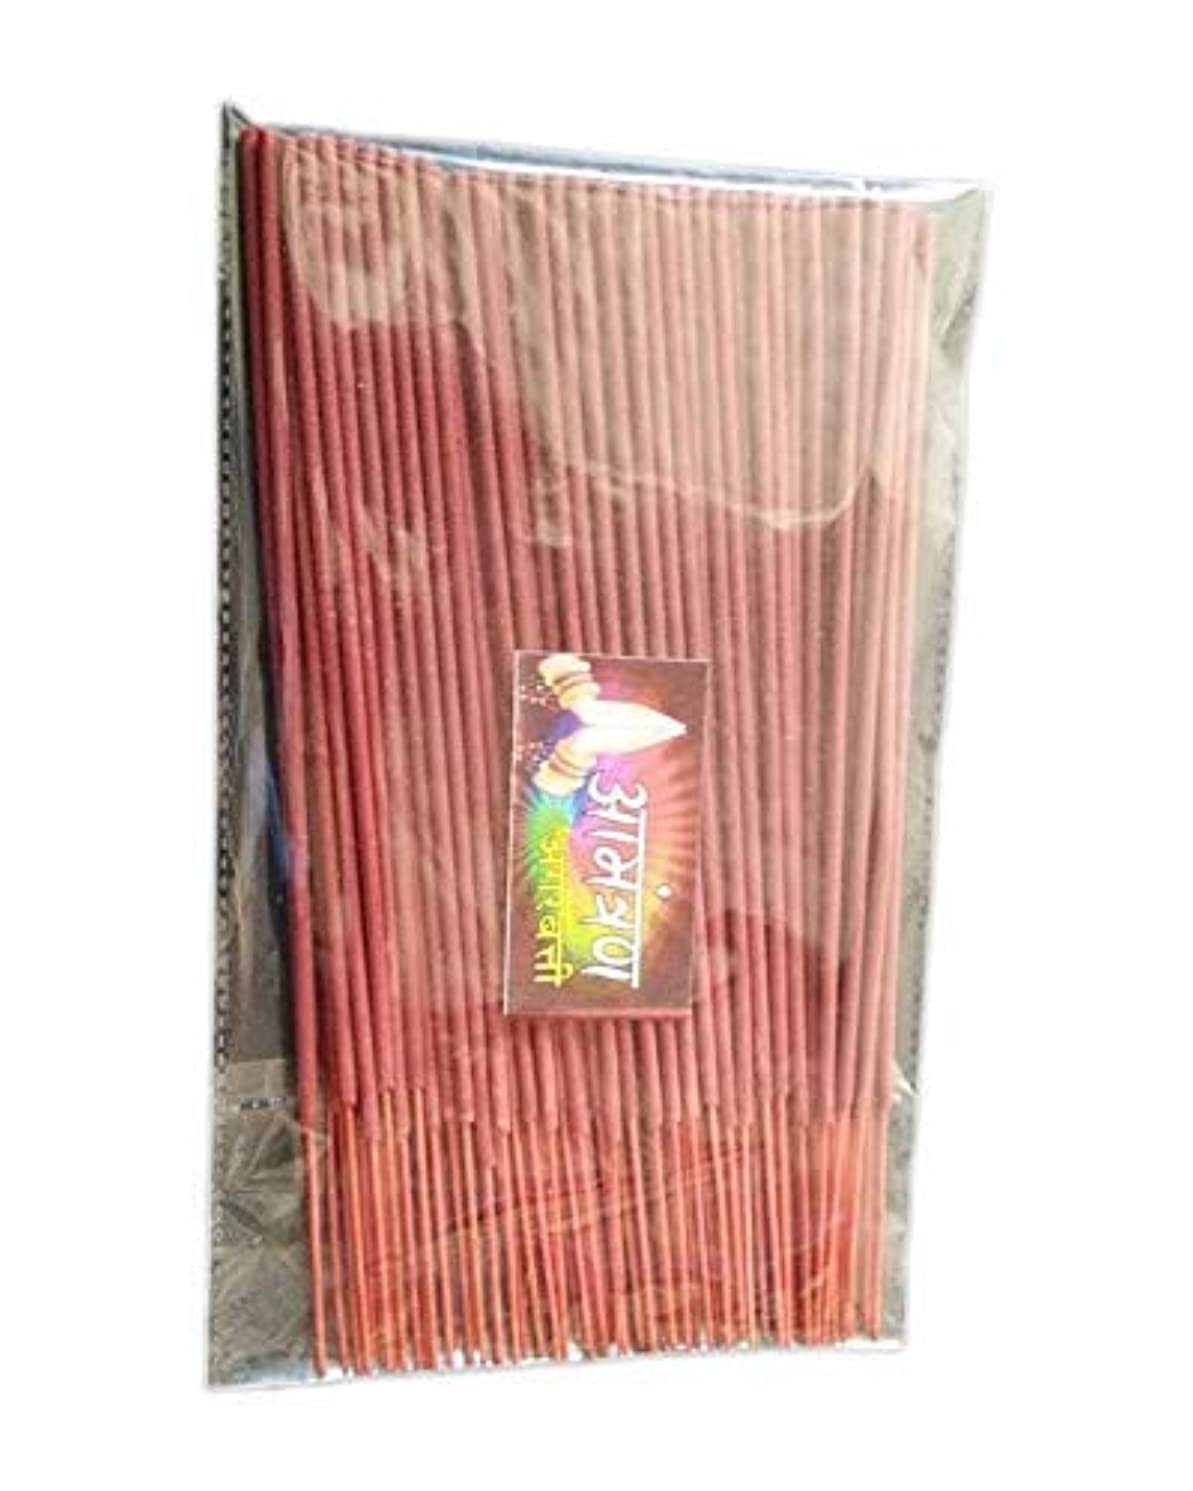 乳白色高揚した歌Darshan Amantran Incense Sticks/Agarbatti (500 GM Pack)